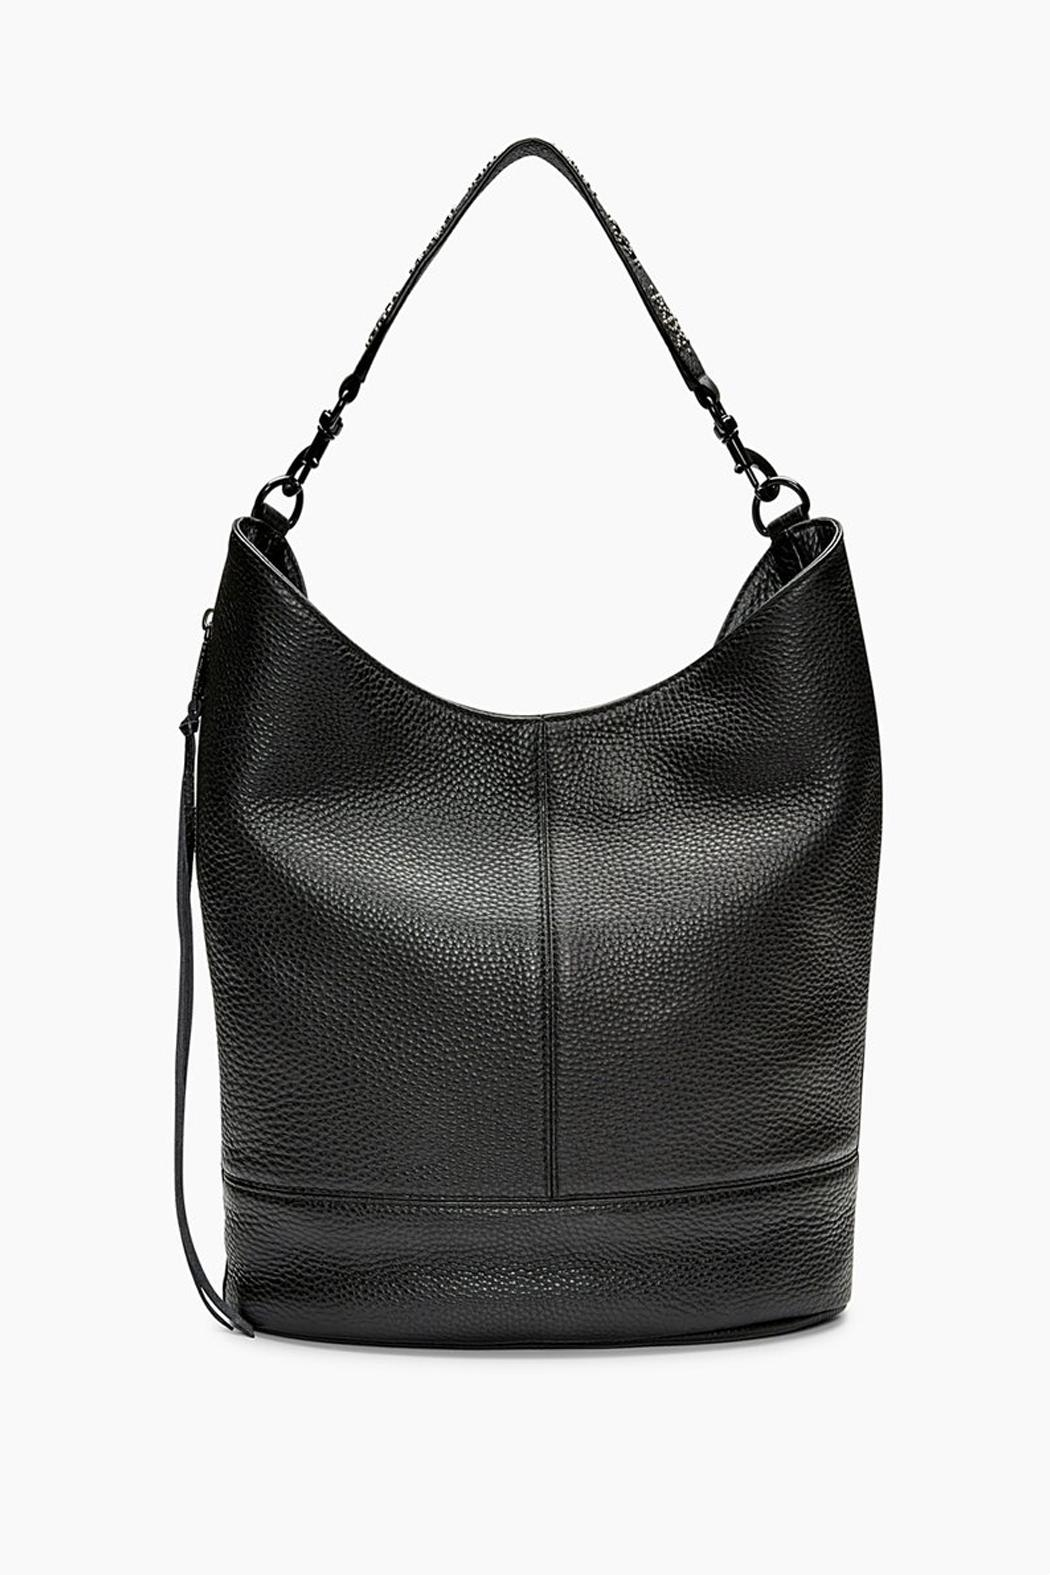 770170c54e1 Rebecca Minkoff Black Bucket Hobo from South Carolina by Baehr Feet ...